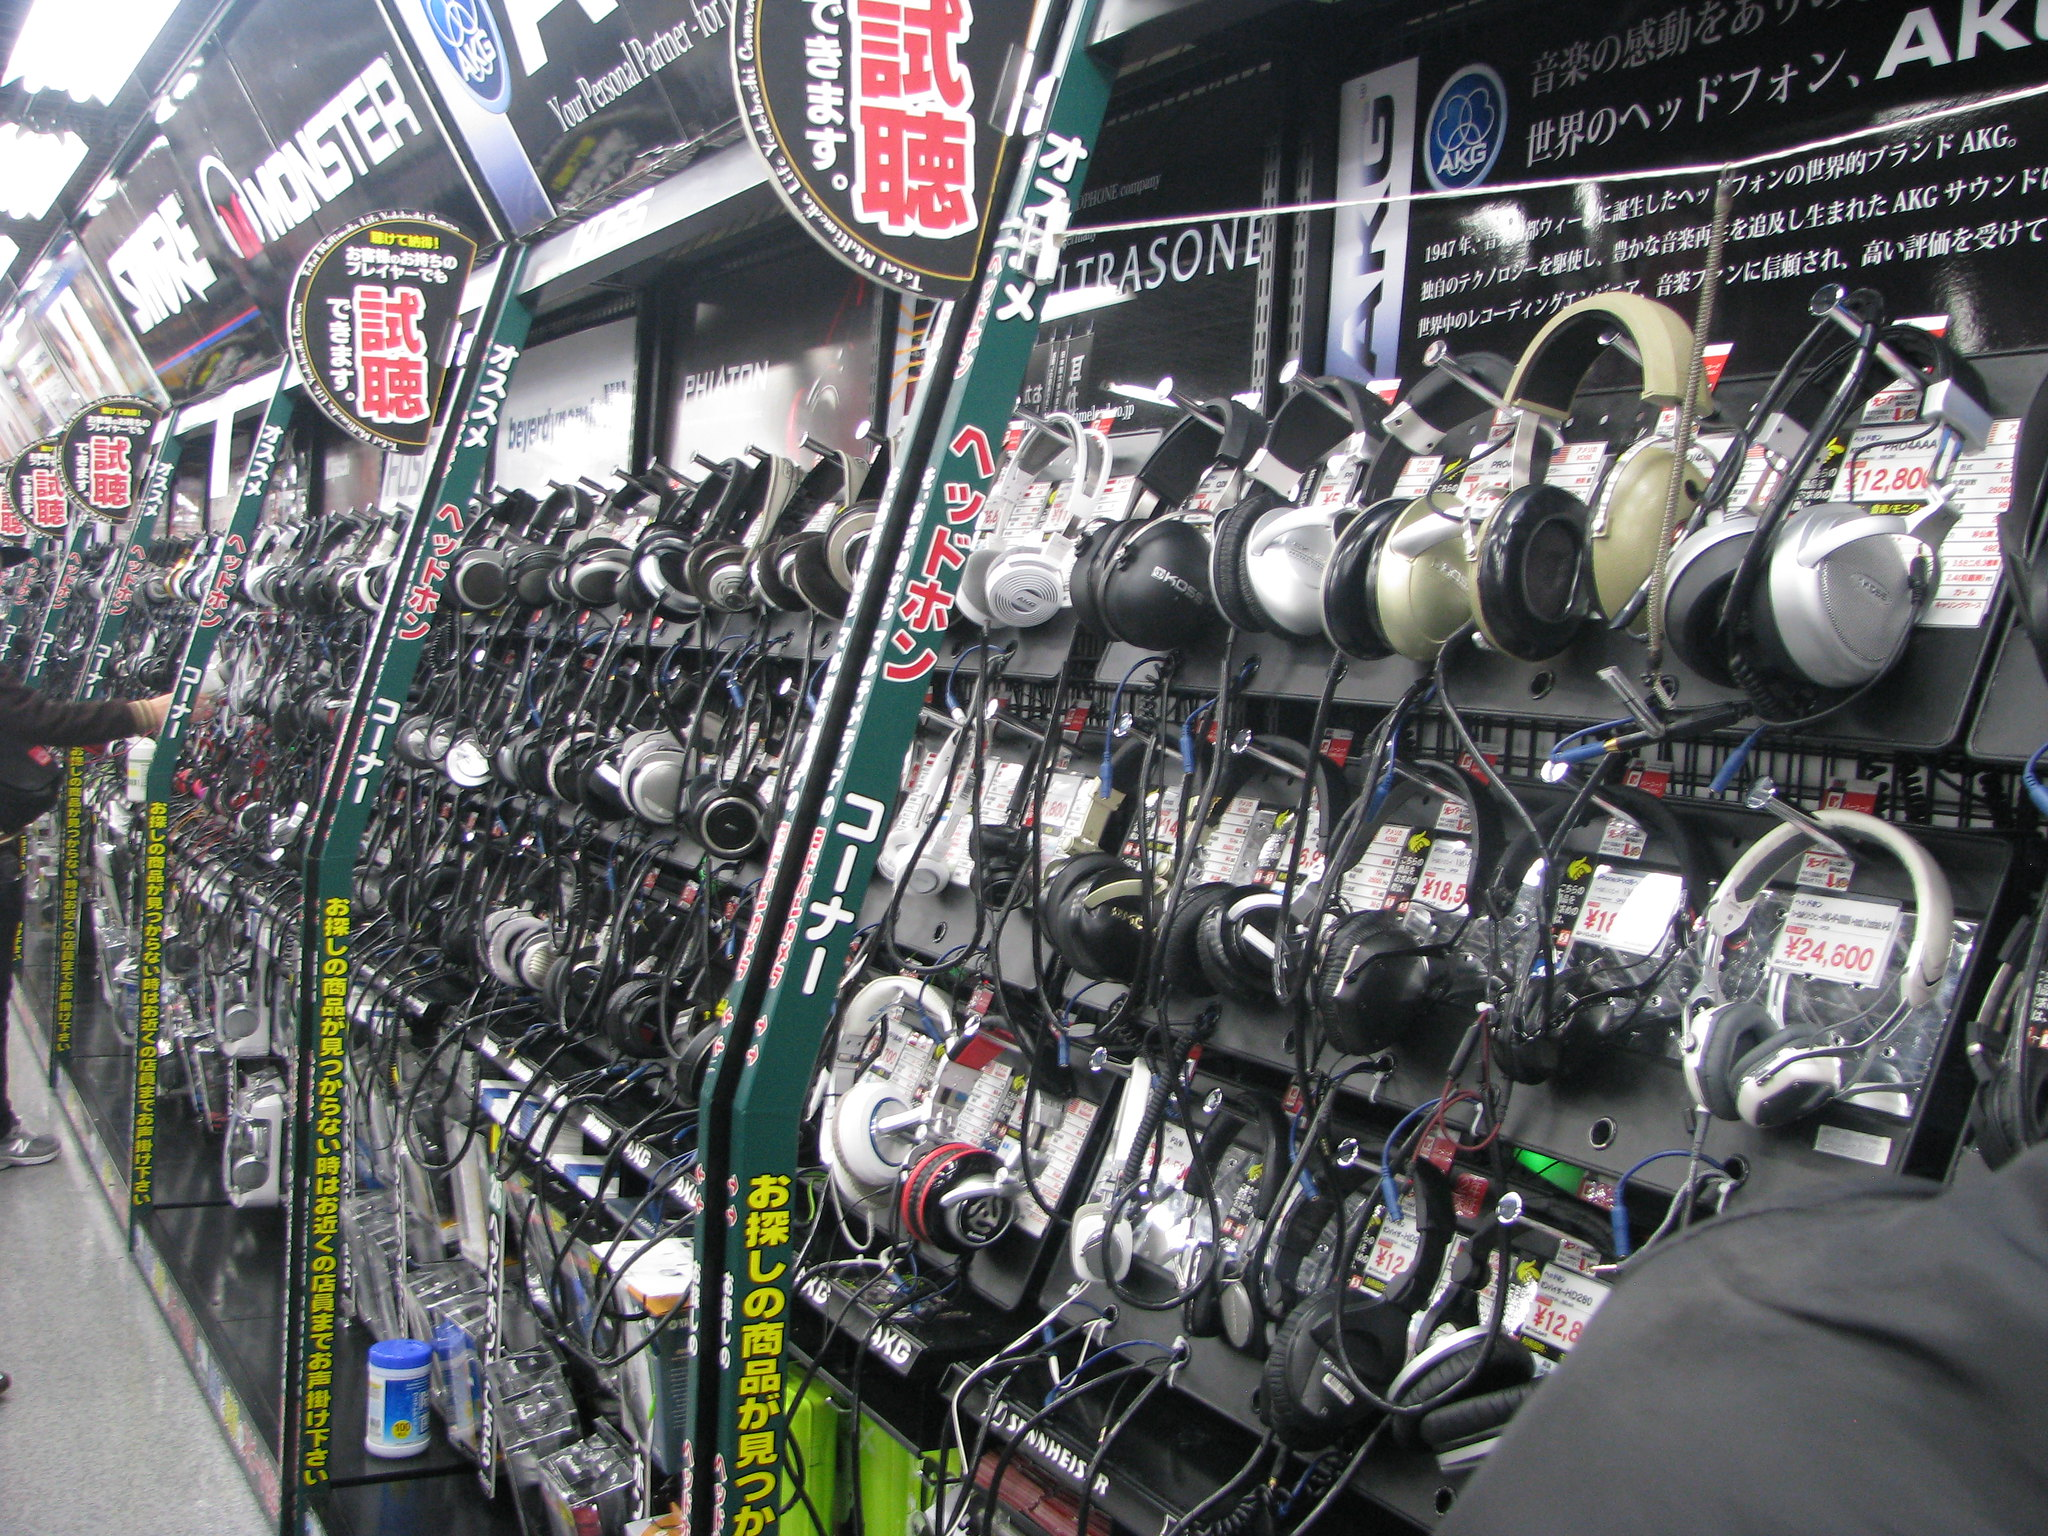 Headphones (Yodobashi-Akiba Cultural Mapping floors 1-4)